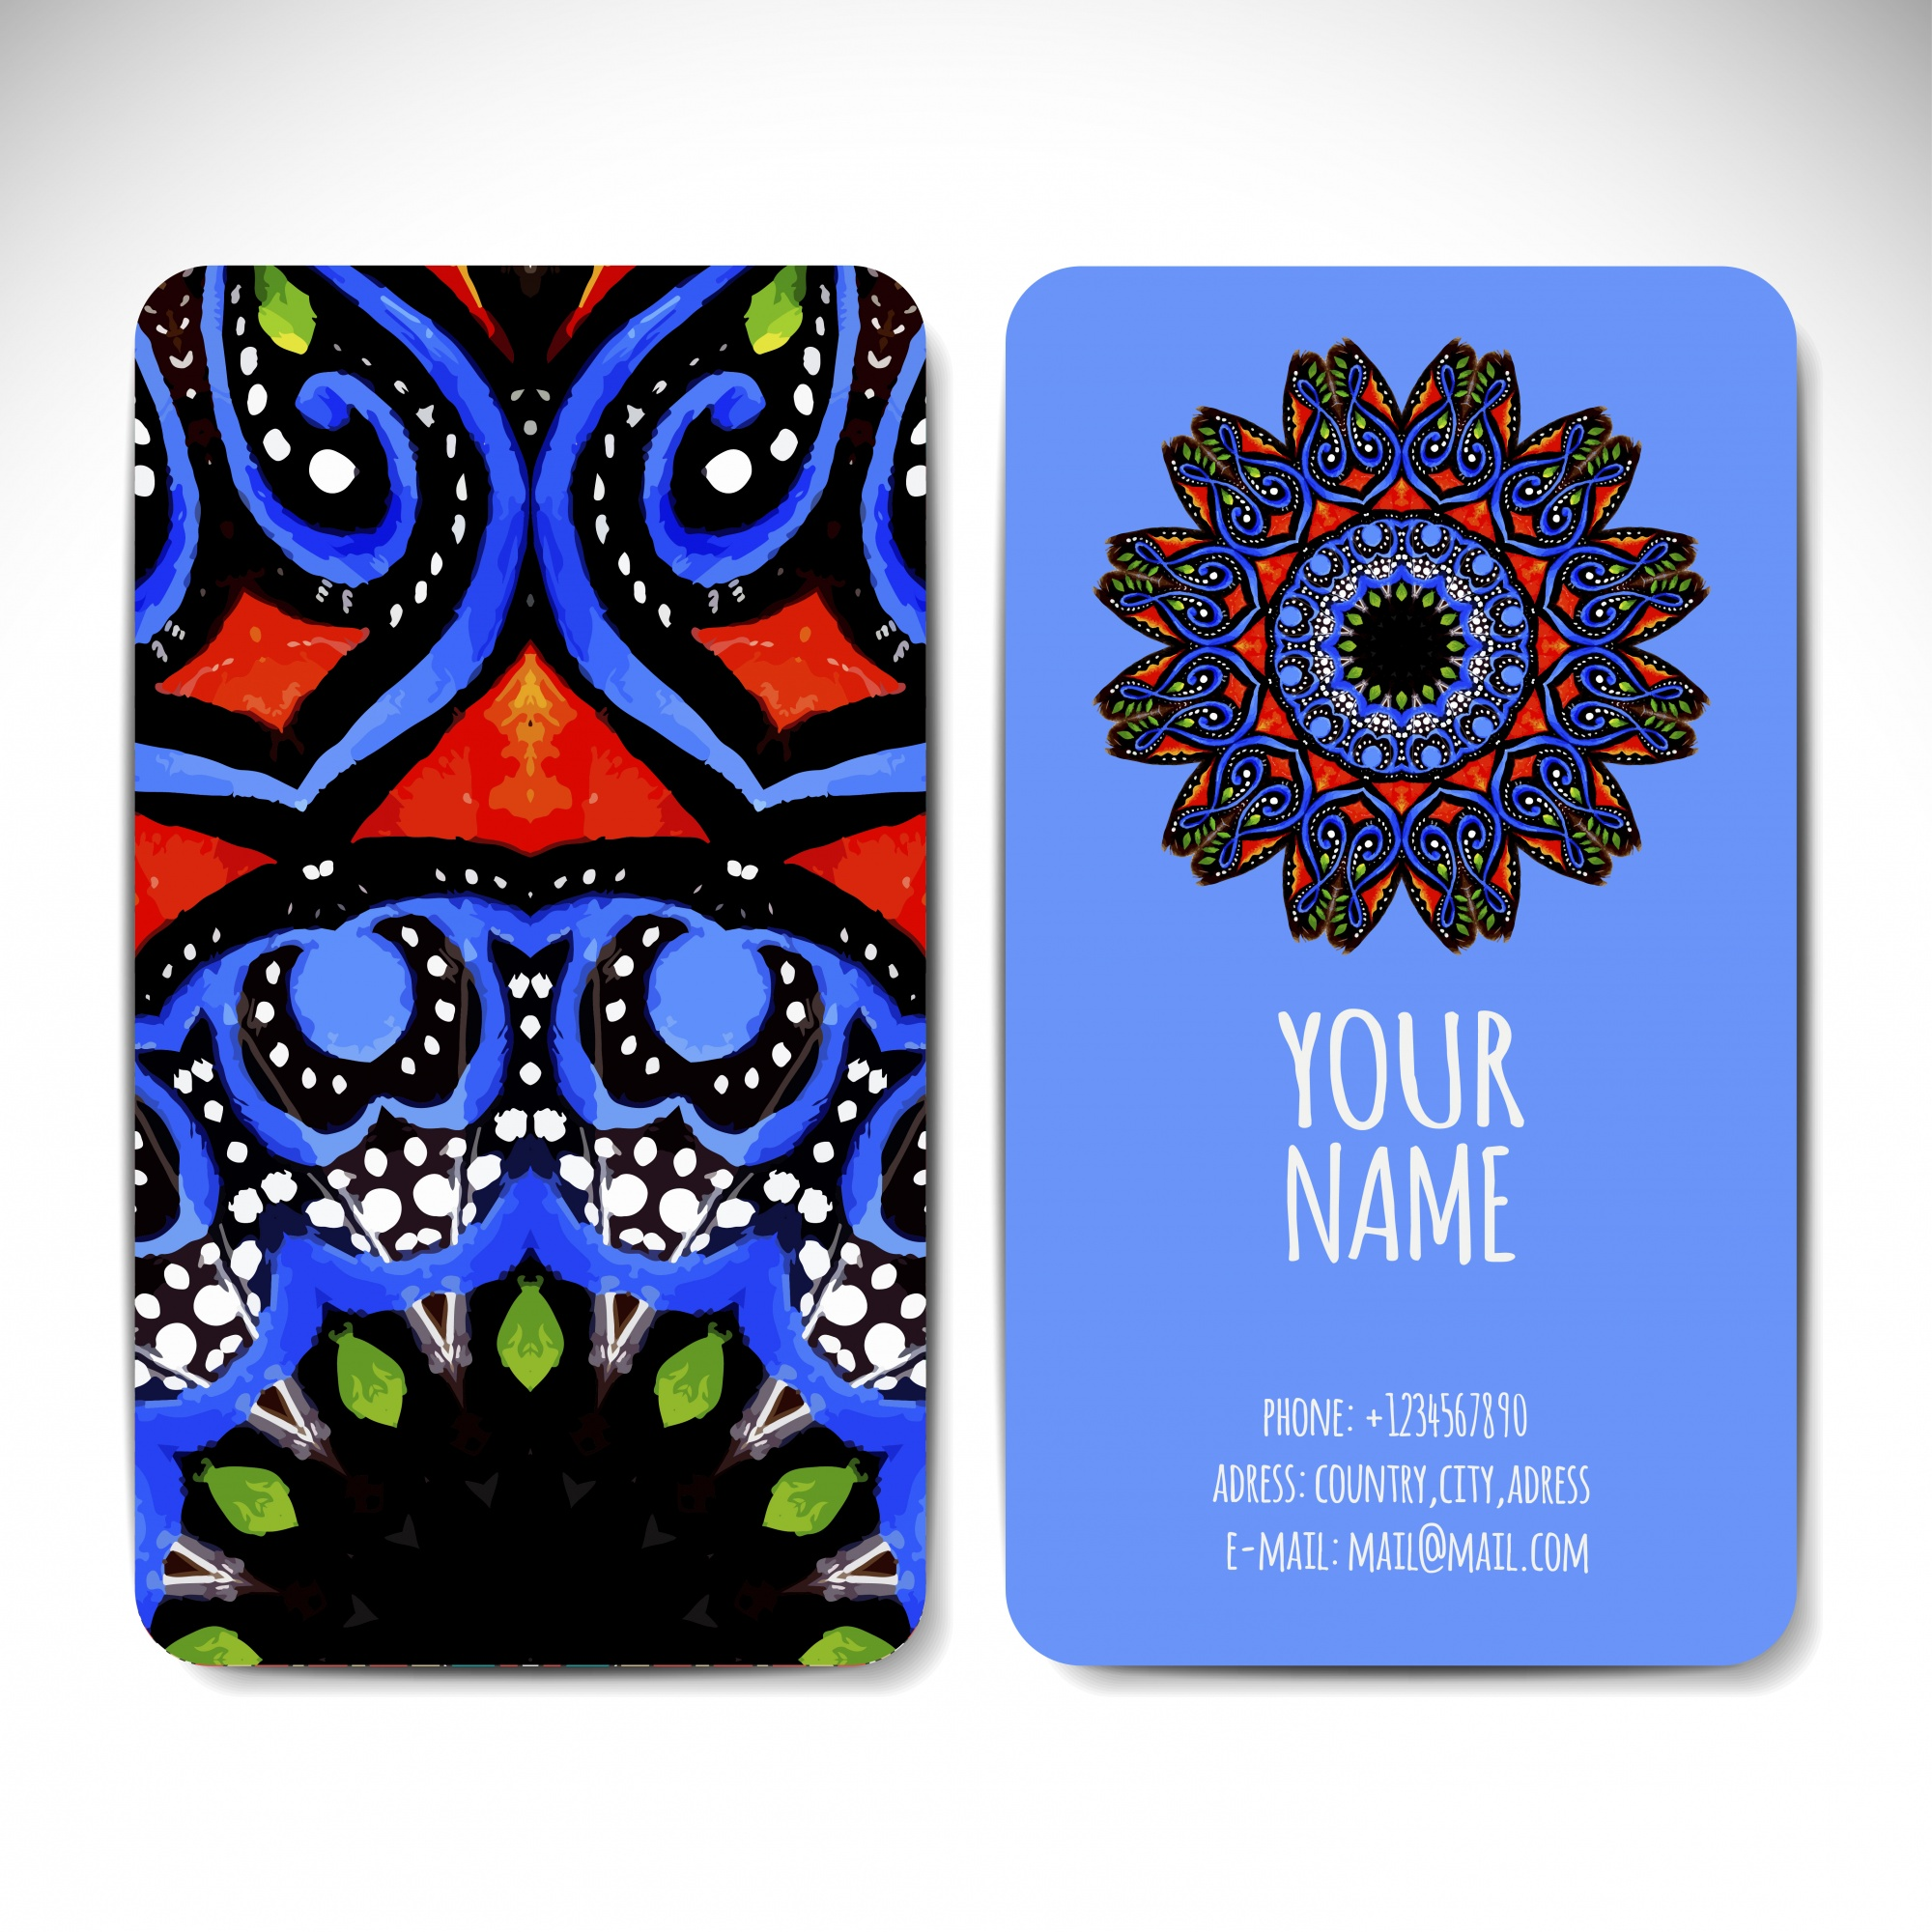 Tribal ethnic style business card